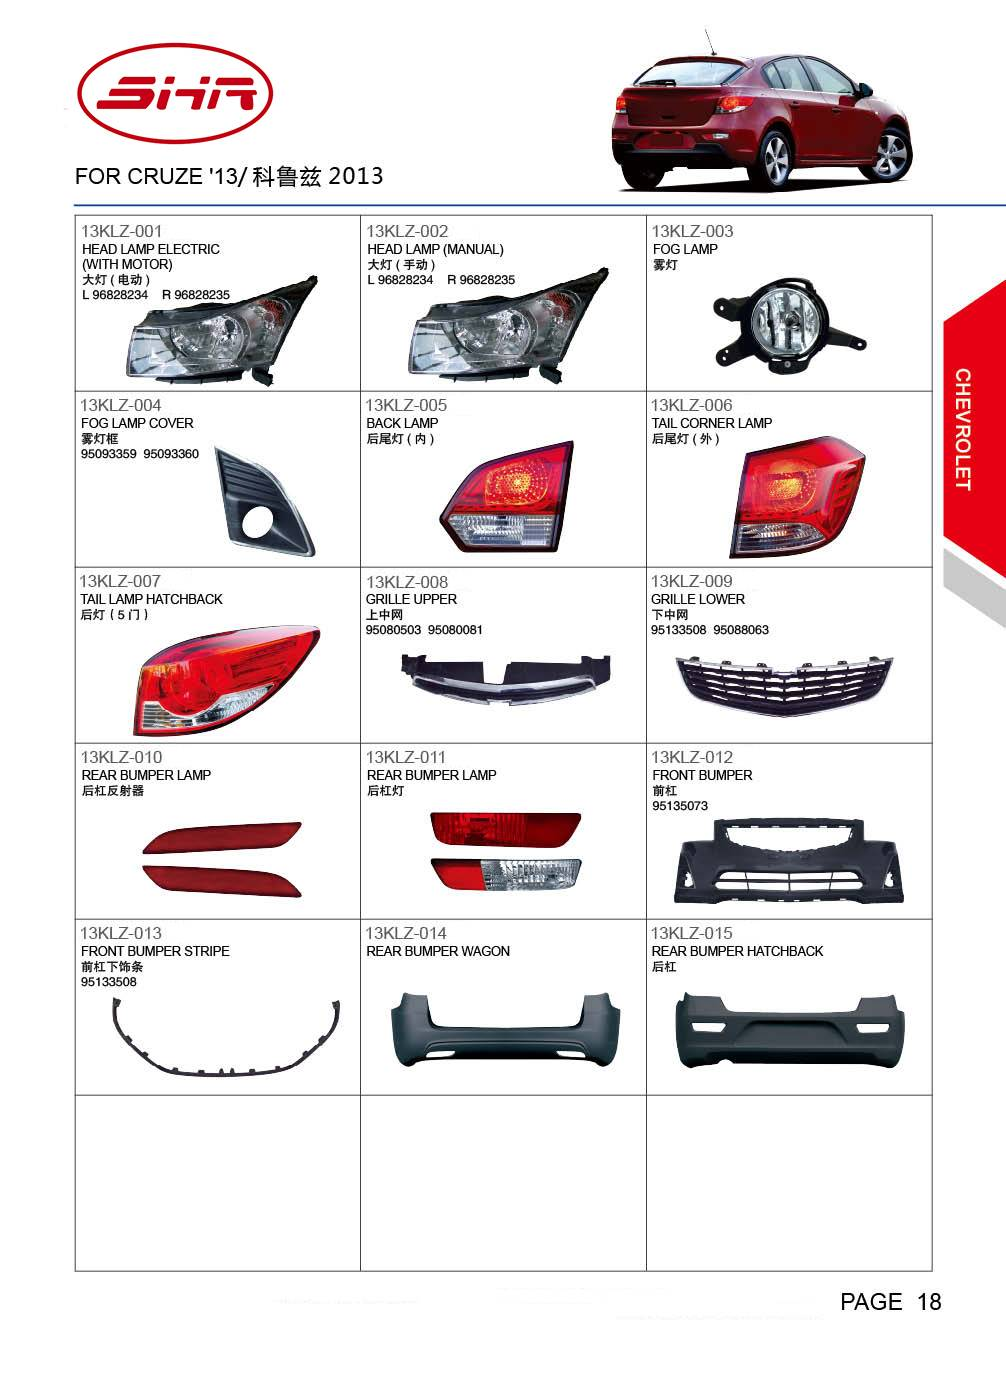 chevrolet cruze 2013 aftermarket spare parts